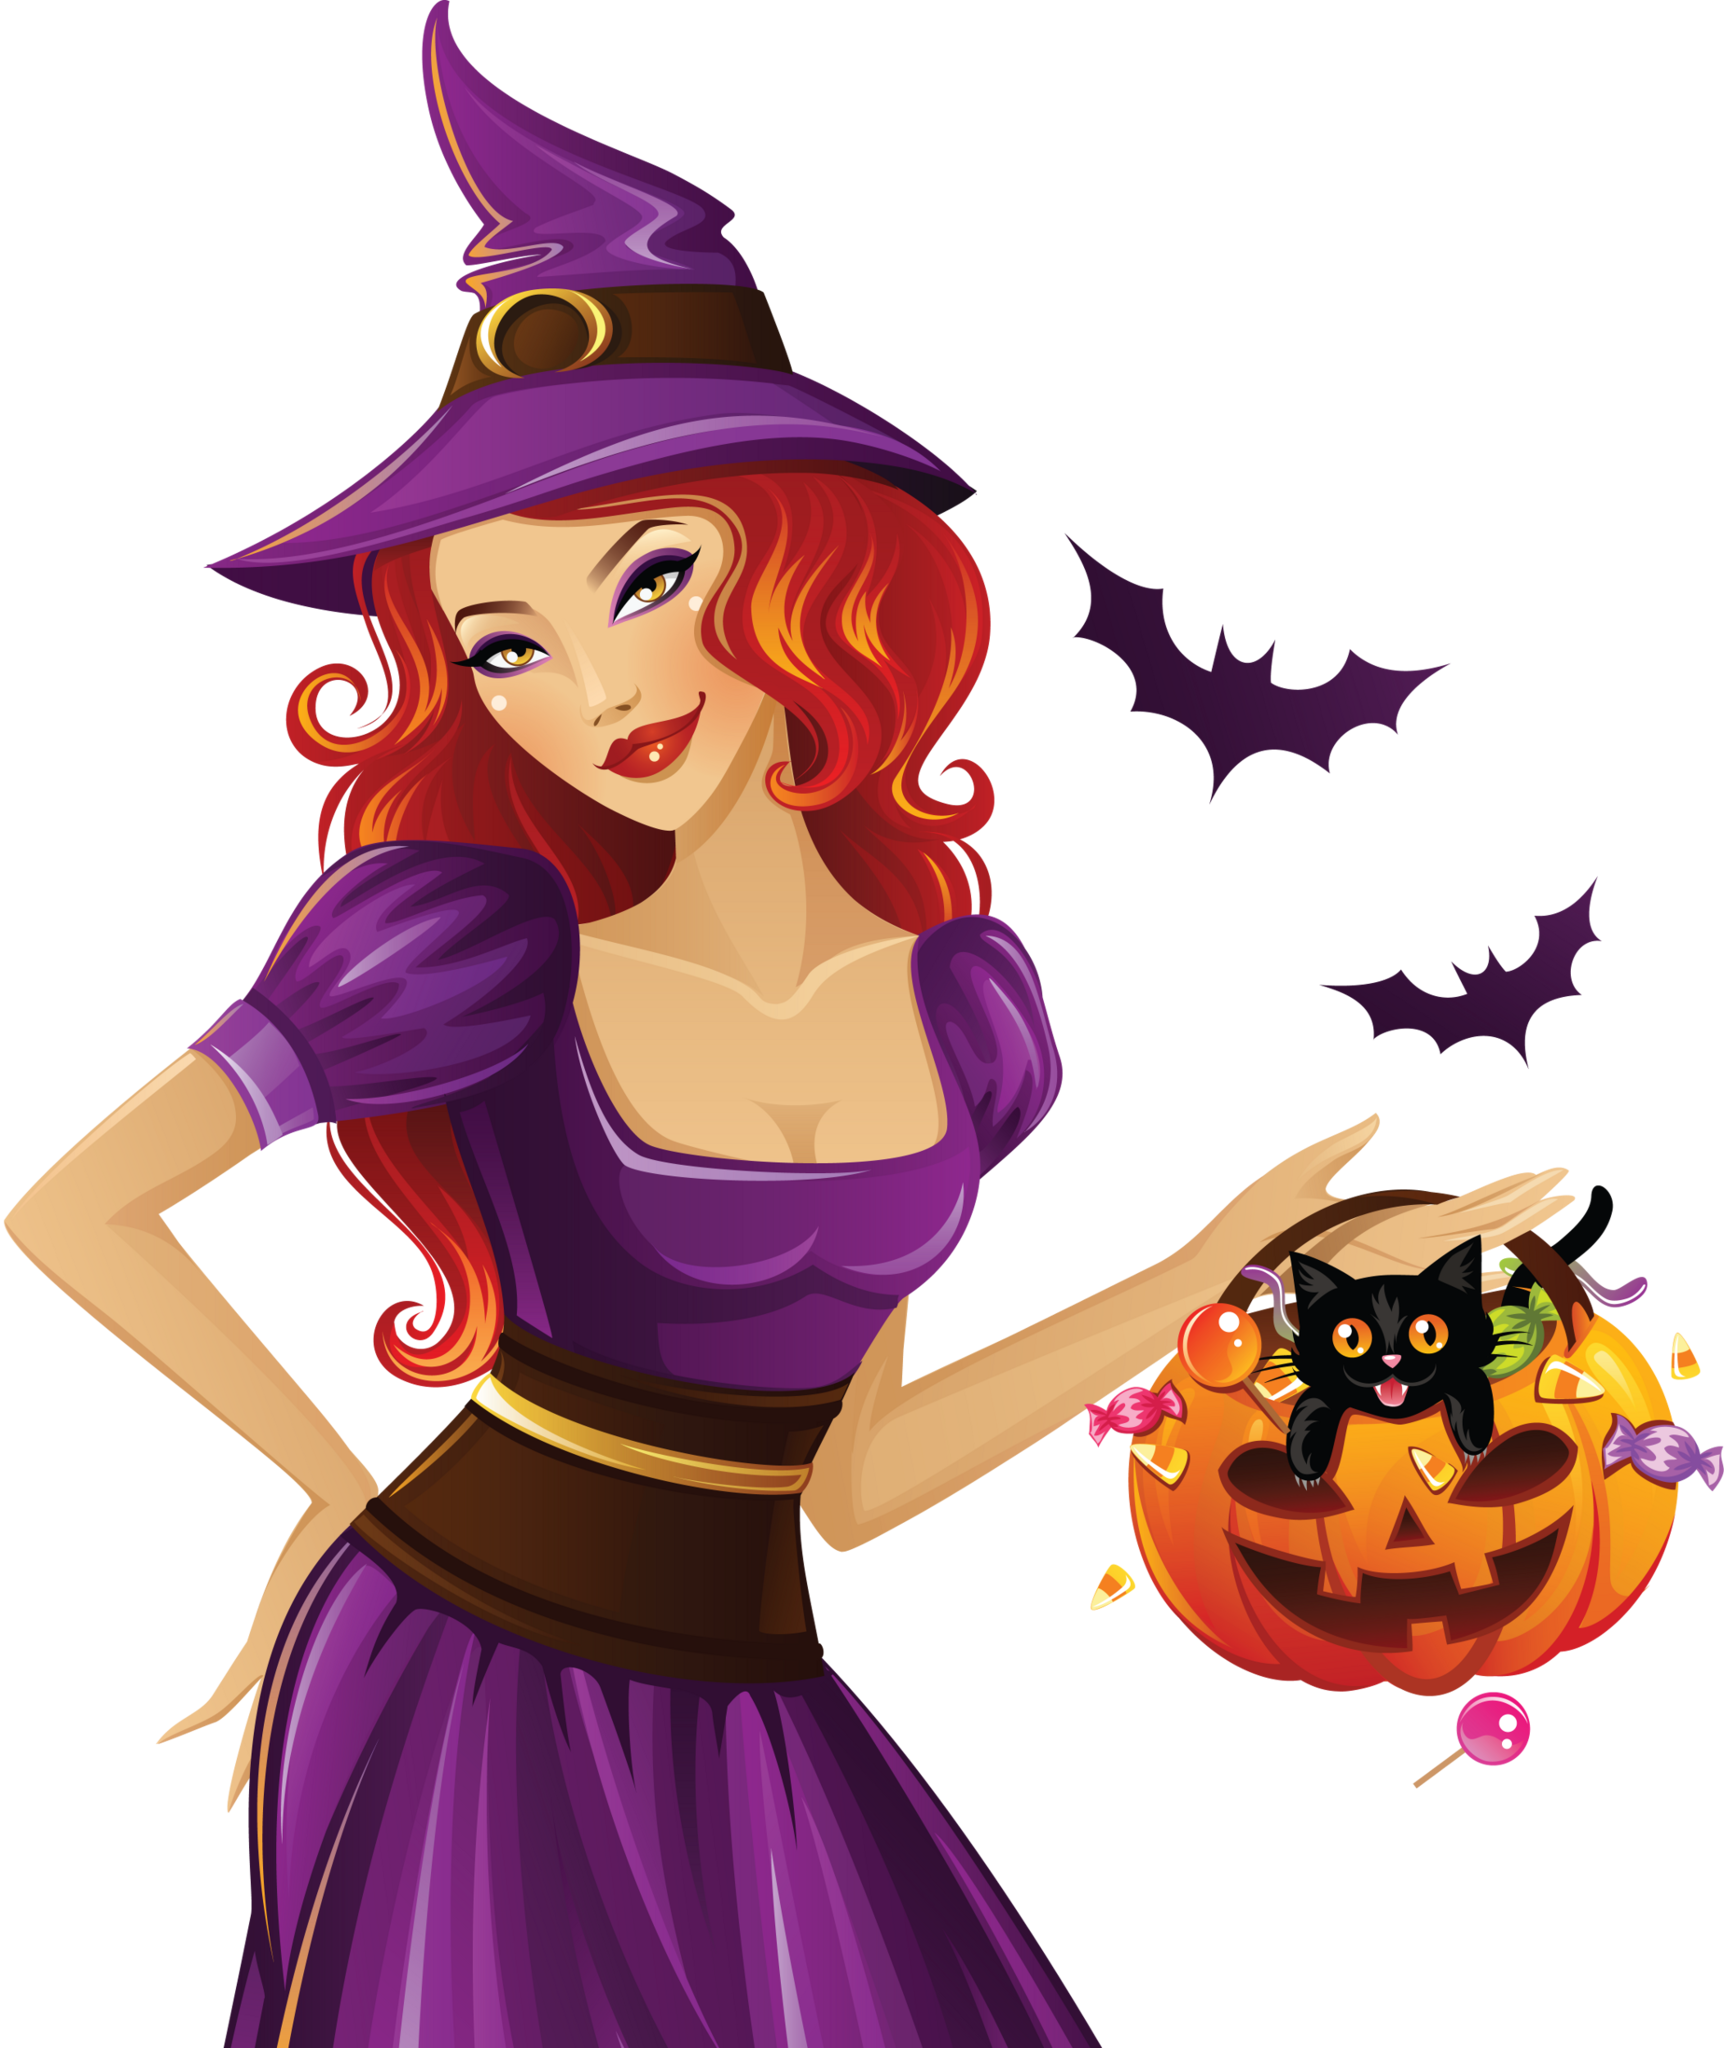 Witch clipart red hair. Worldwide clich about gingers